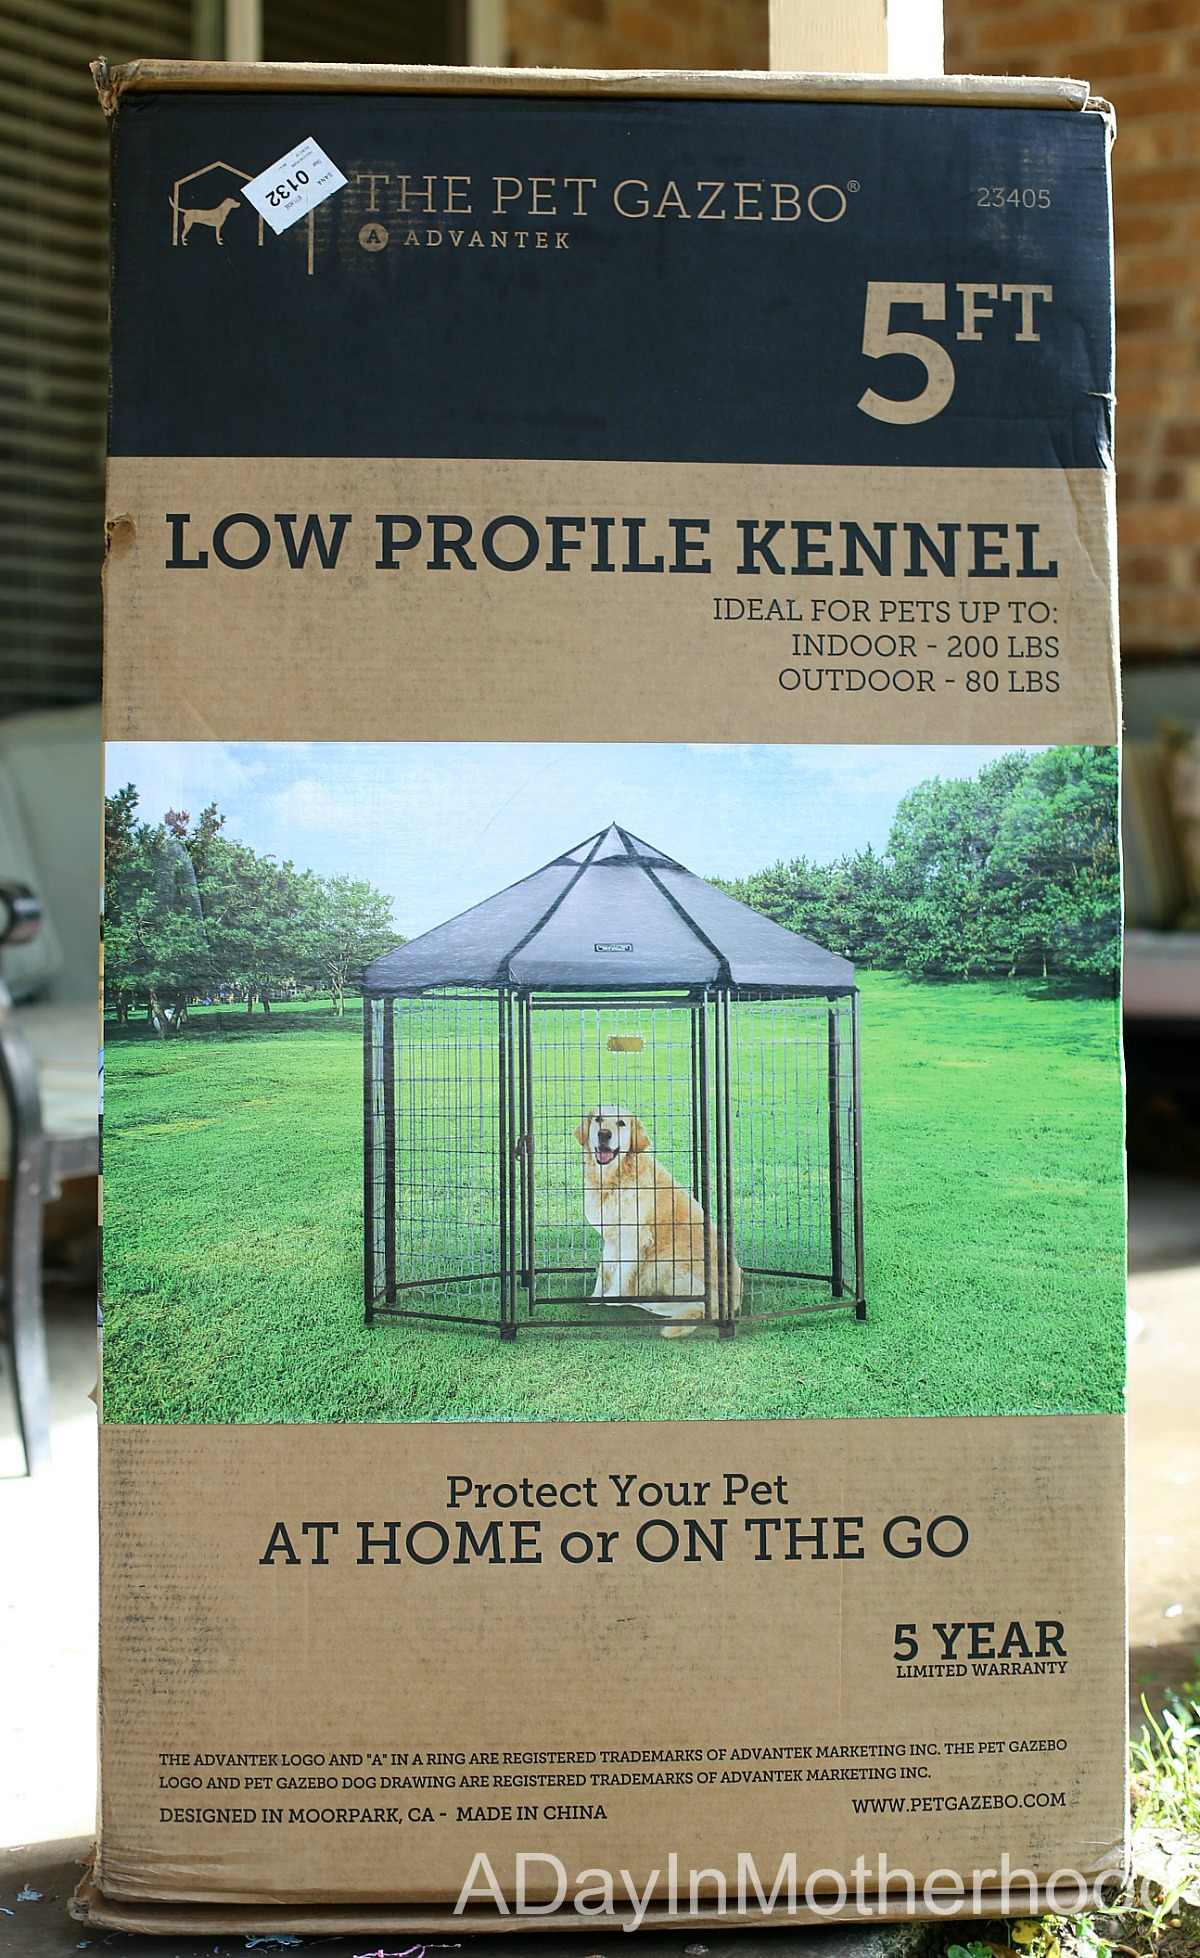 Spoil Your Dog with Space in a Rexlaxing Kennel with the The Pet Gazebo box